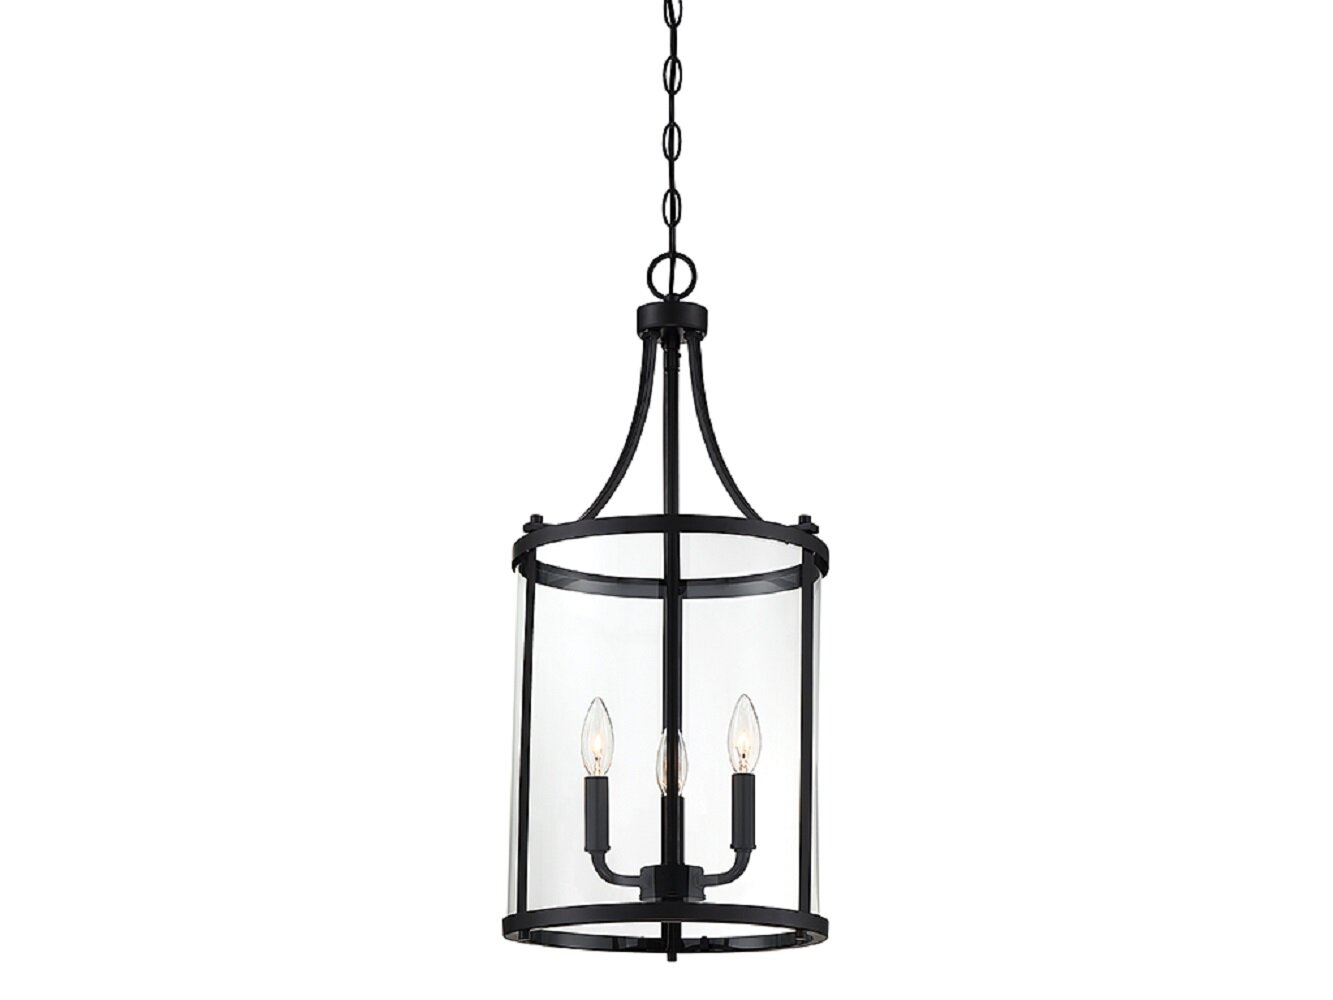 Ezio 3 Light Lantern Cylinder Pendant Pertaining To Tessie 3 Light Lantern Cylinder Pendants (Photo 4 of 30)